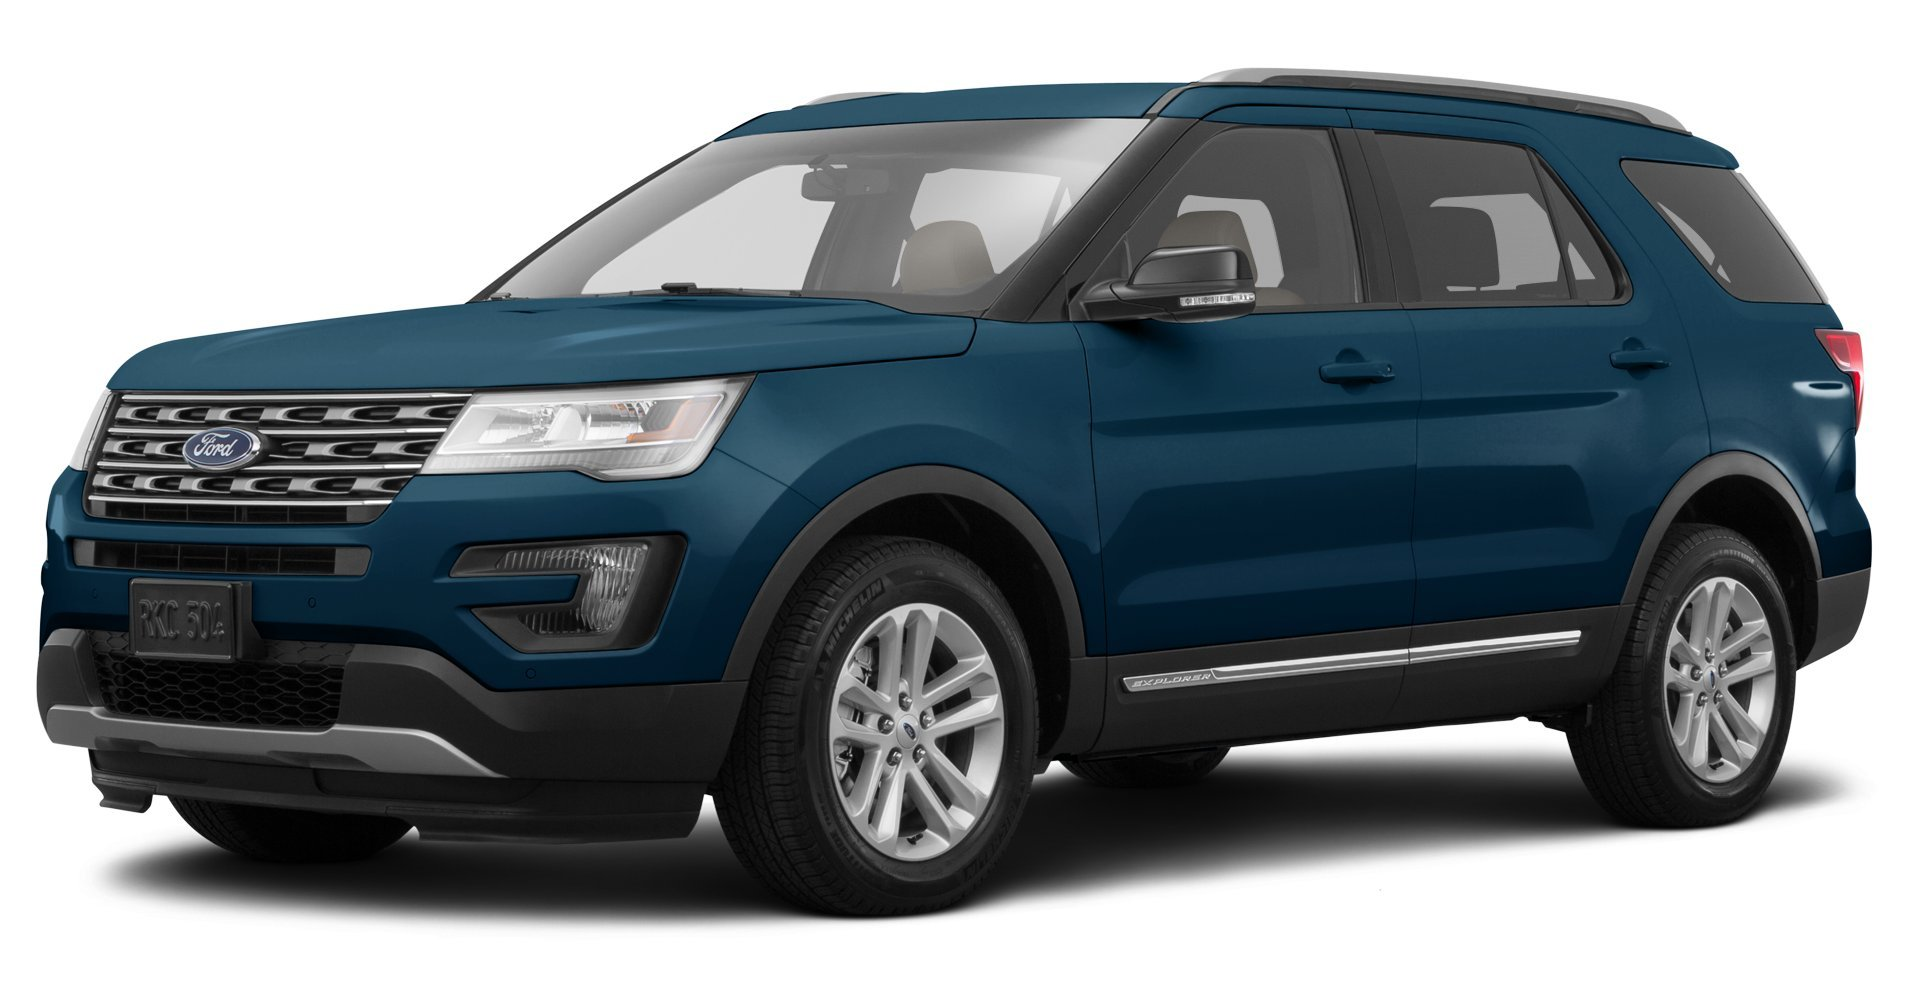 2016 ford explorer reviews images and specs vehicles. Black Bedroom Furniture Sets. Home Design Ideas